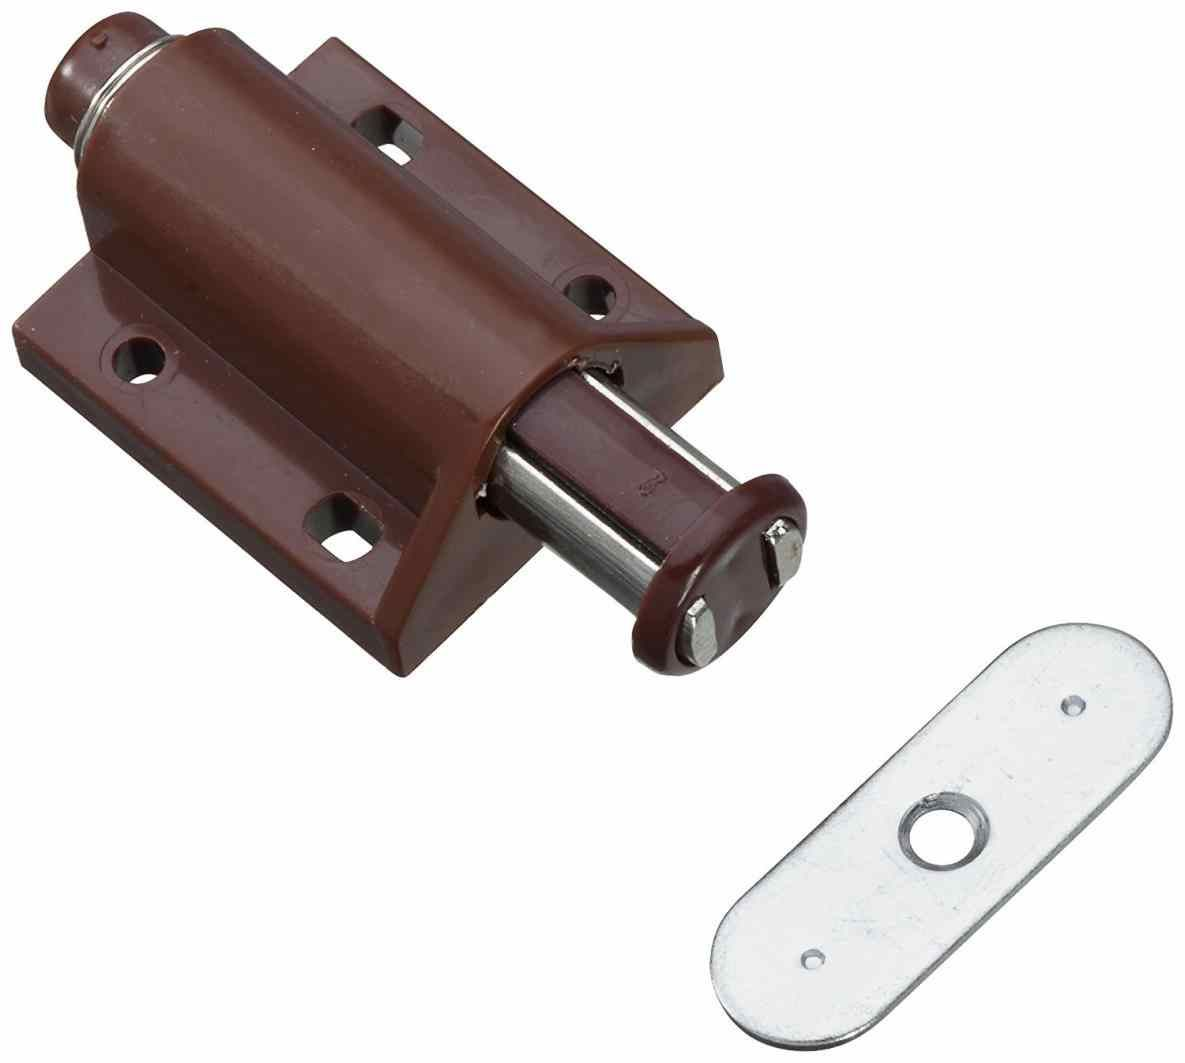 Cabinet Touch Latch In Brown Sugatsune Pushtoopen Catch Push Magnetic Door